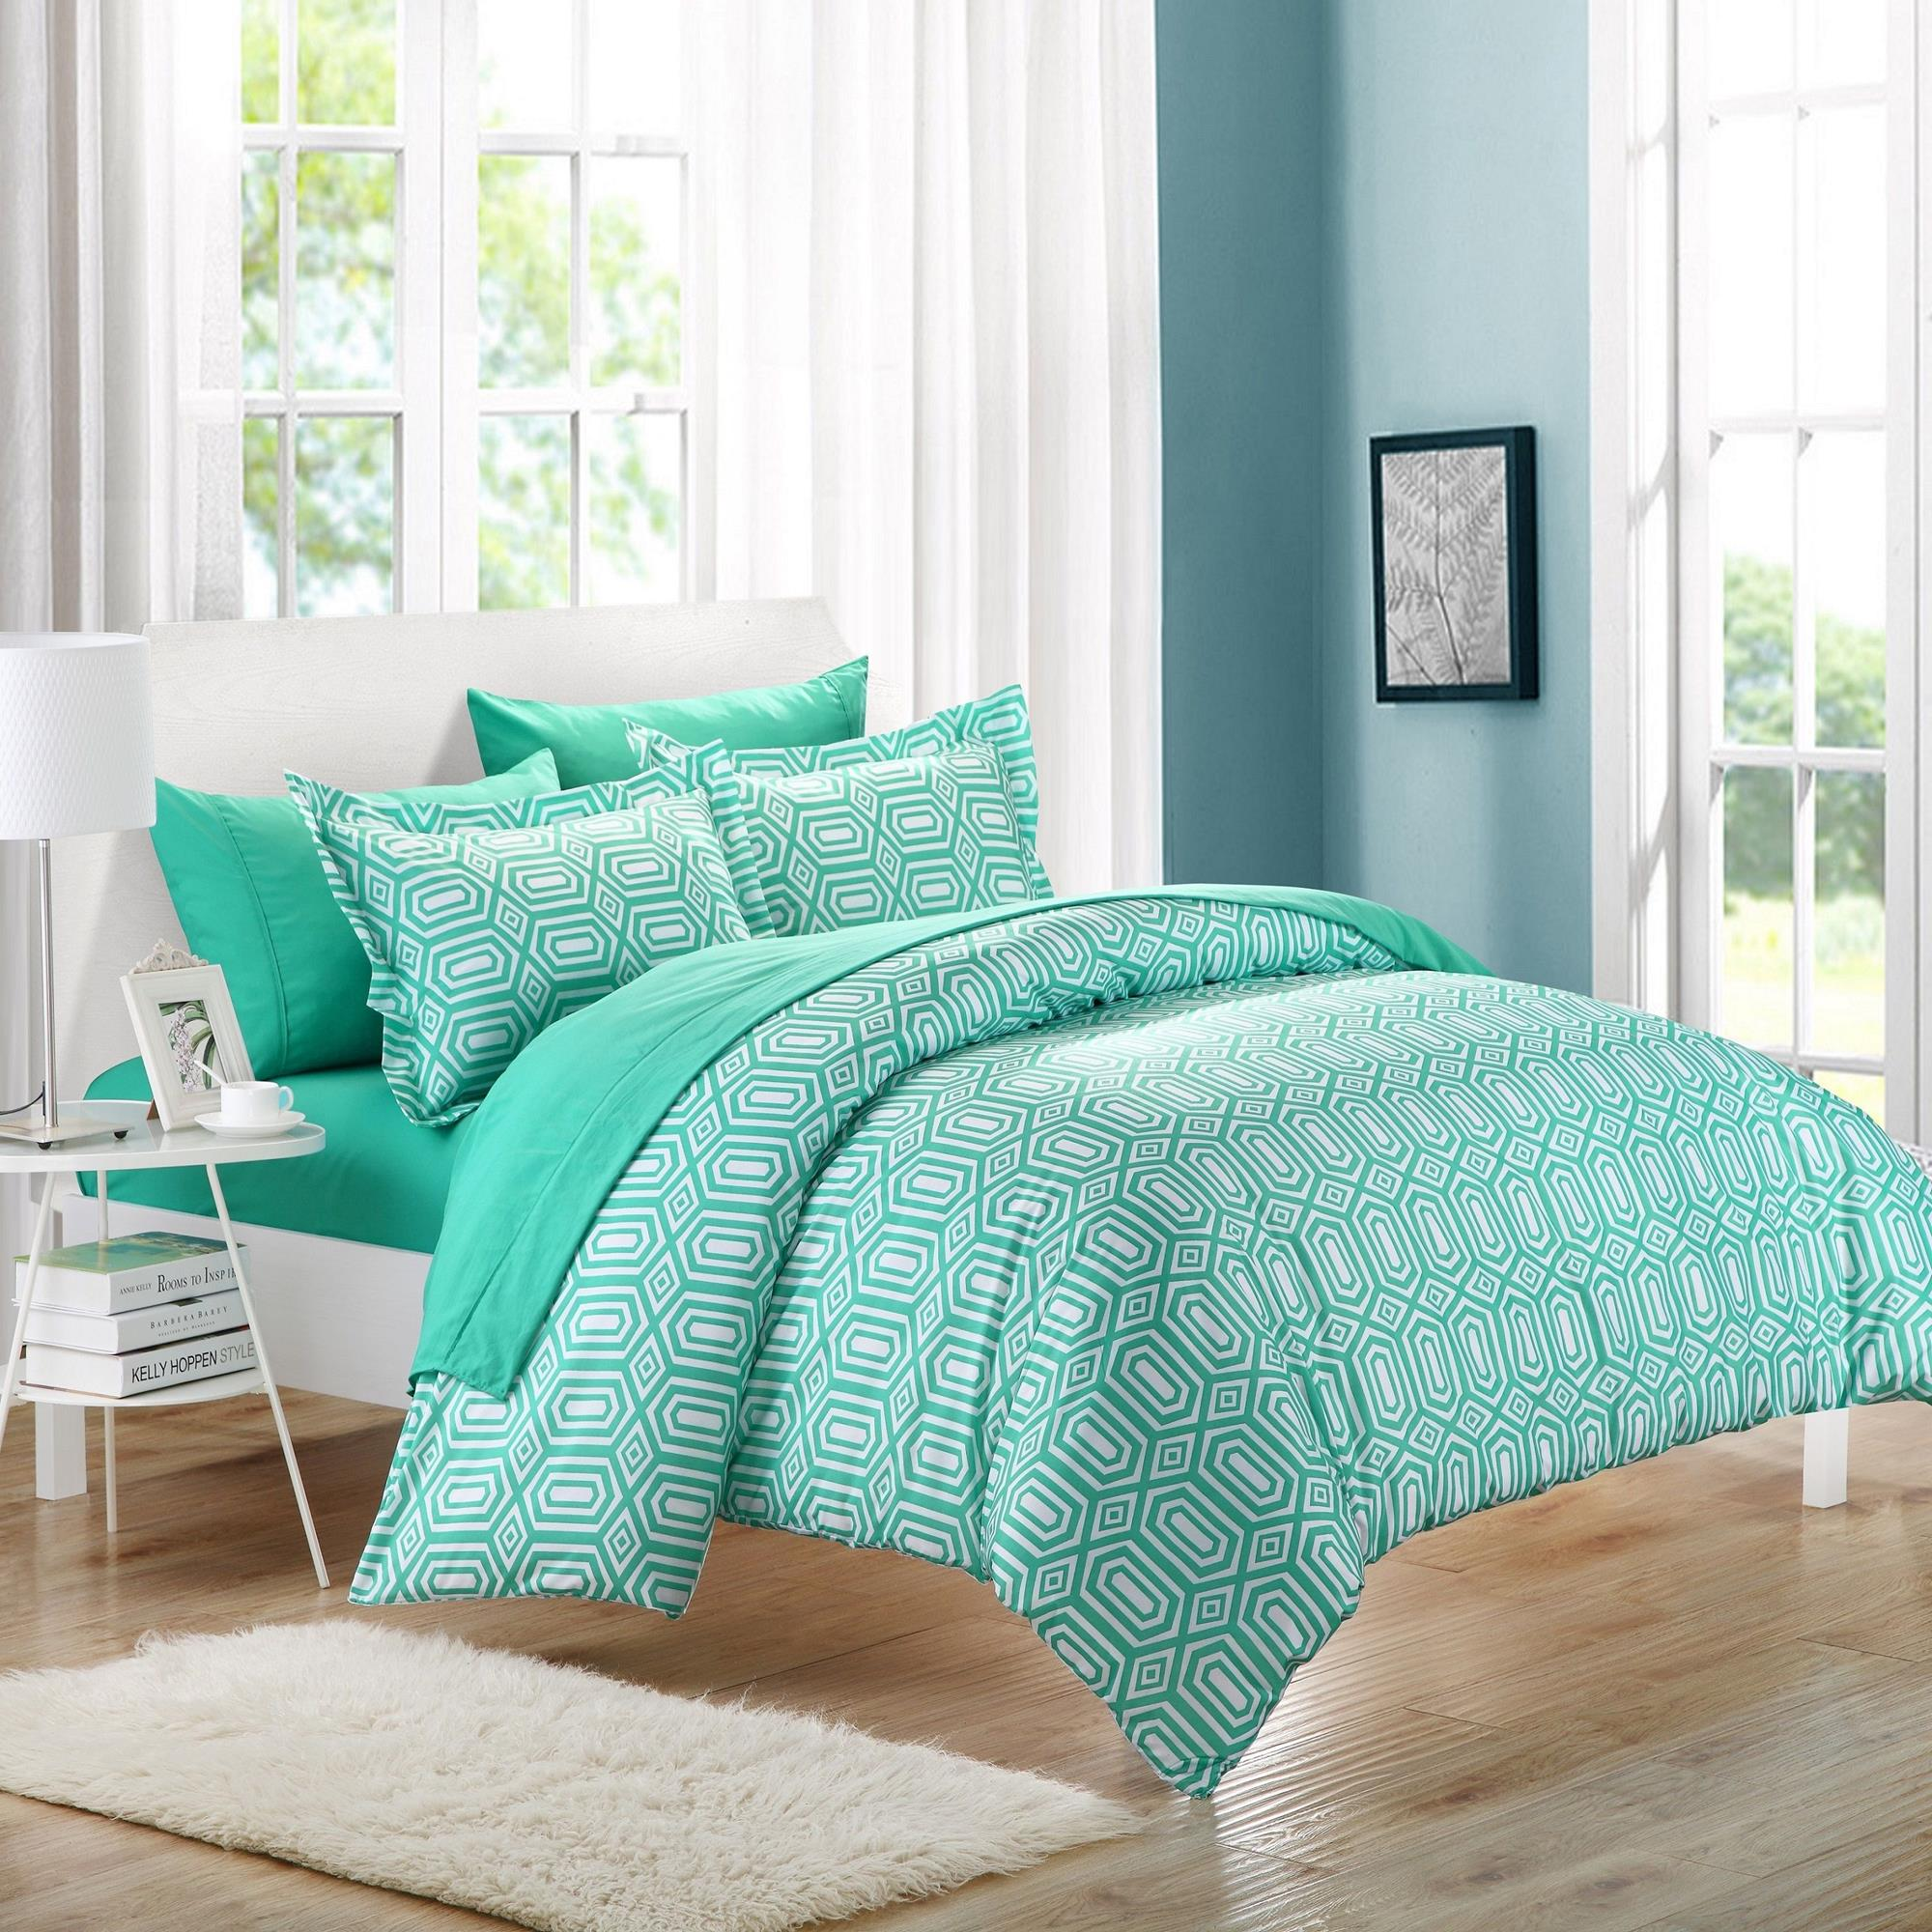 Chic Home Tina Turquoise 7 Piece Embroidery Duvet Cover Bed In A Bag Set